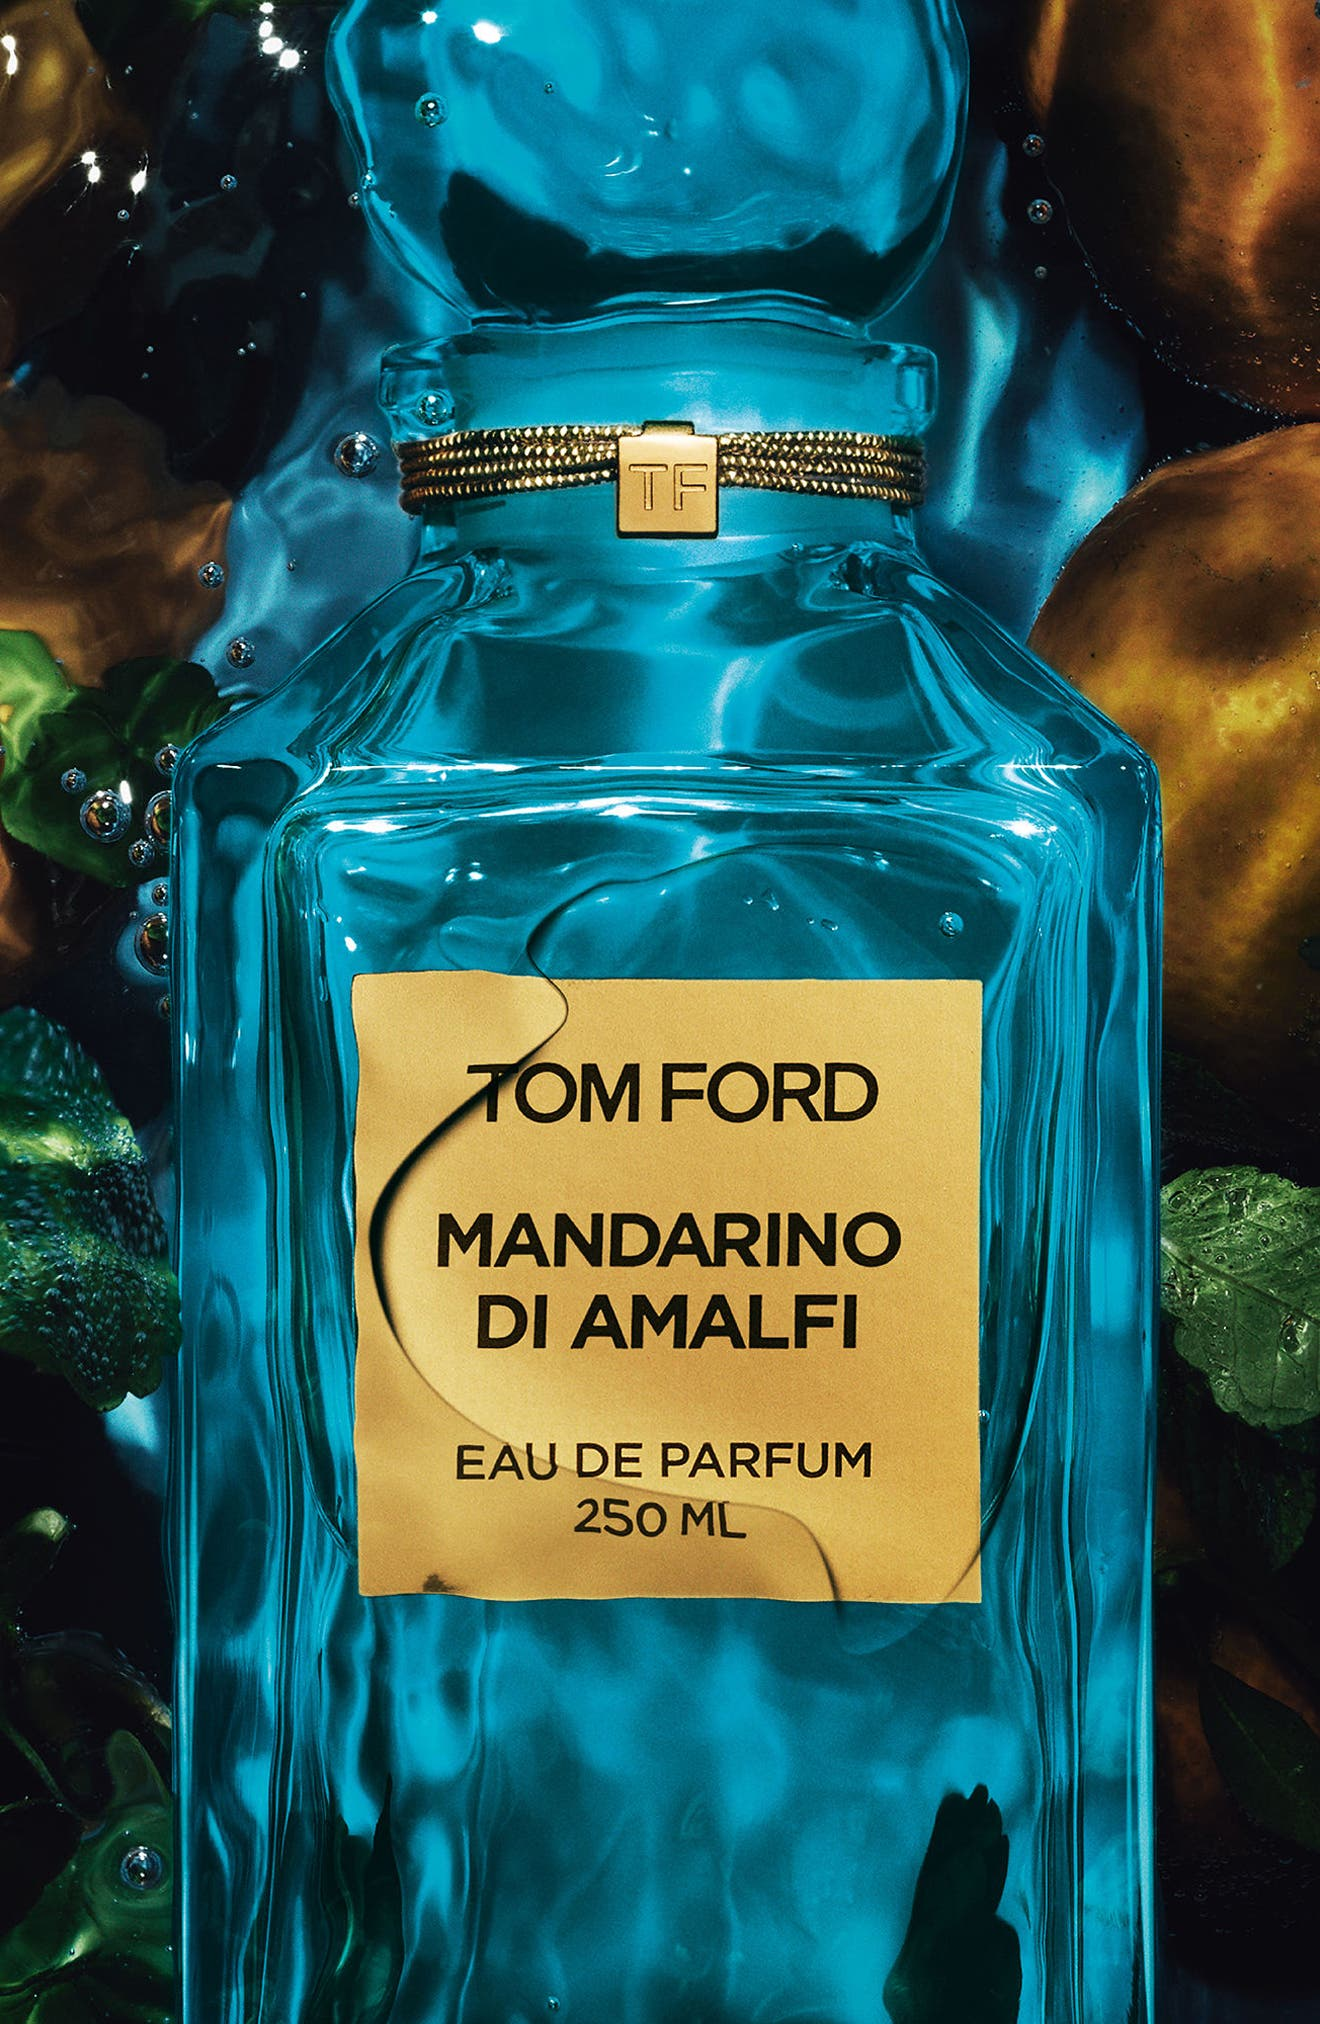 Private Blend Mandarino di Amalfi Eau de Parfum Decanter,                             Alternate thumbnail 2, color,                             NO COLOR